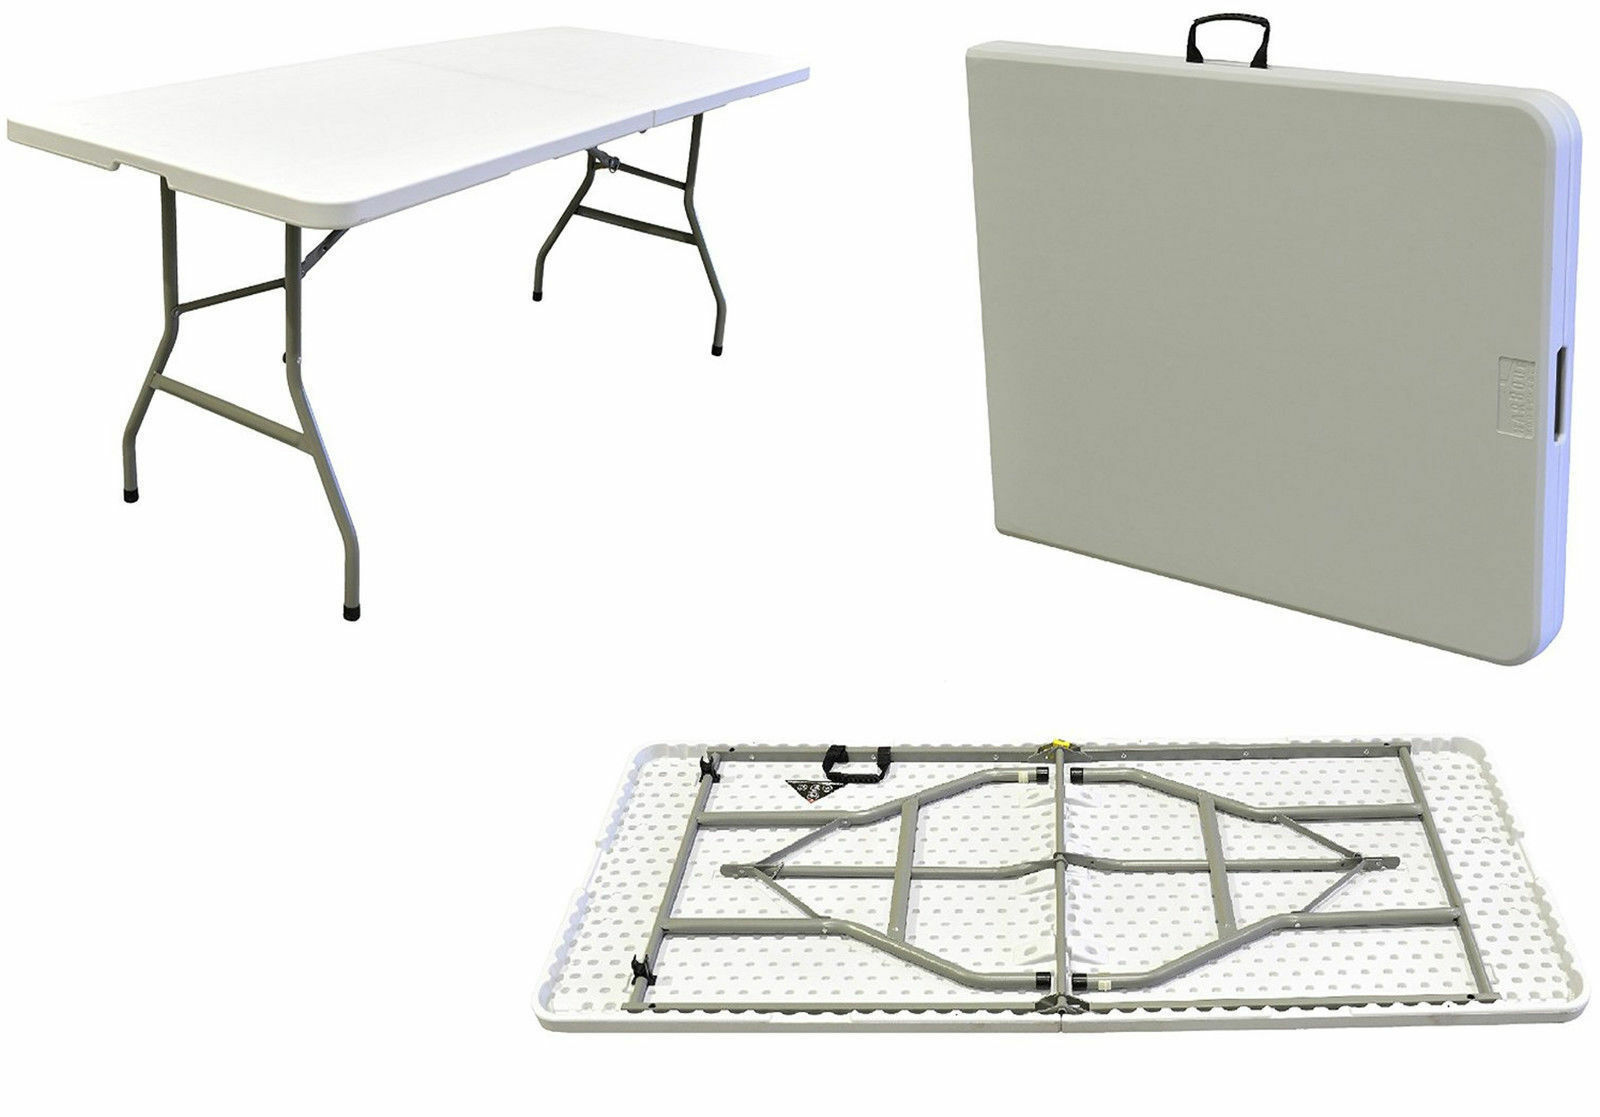 HEAVY DUTY 6FT OUTDOOR PLASTIC TABLE HALF FOLDING MARKET STALL PASTING CAR BOOT